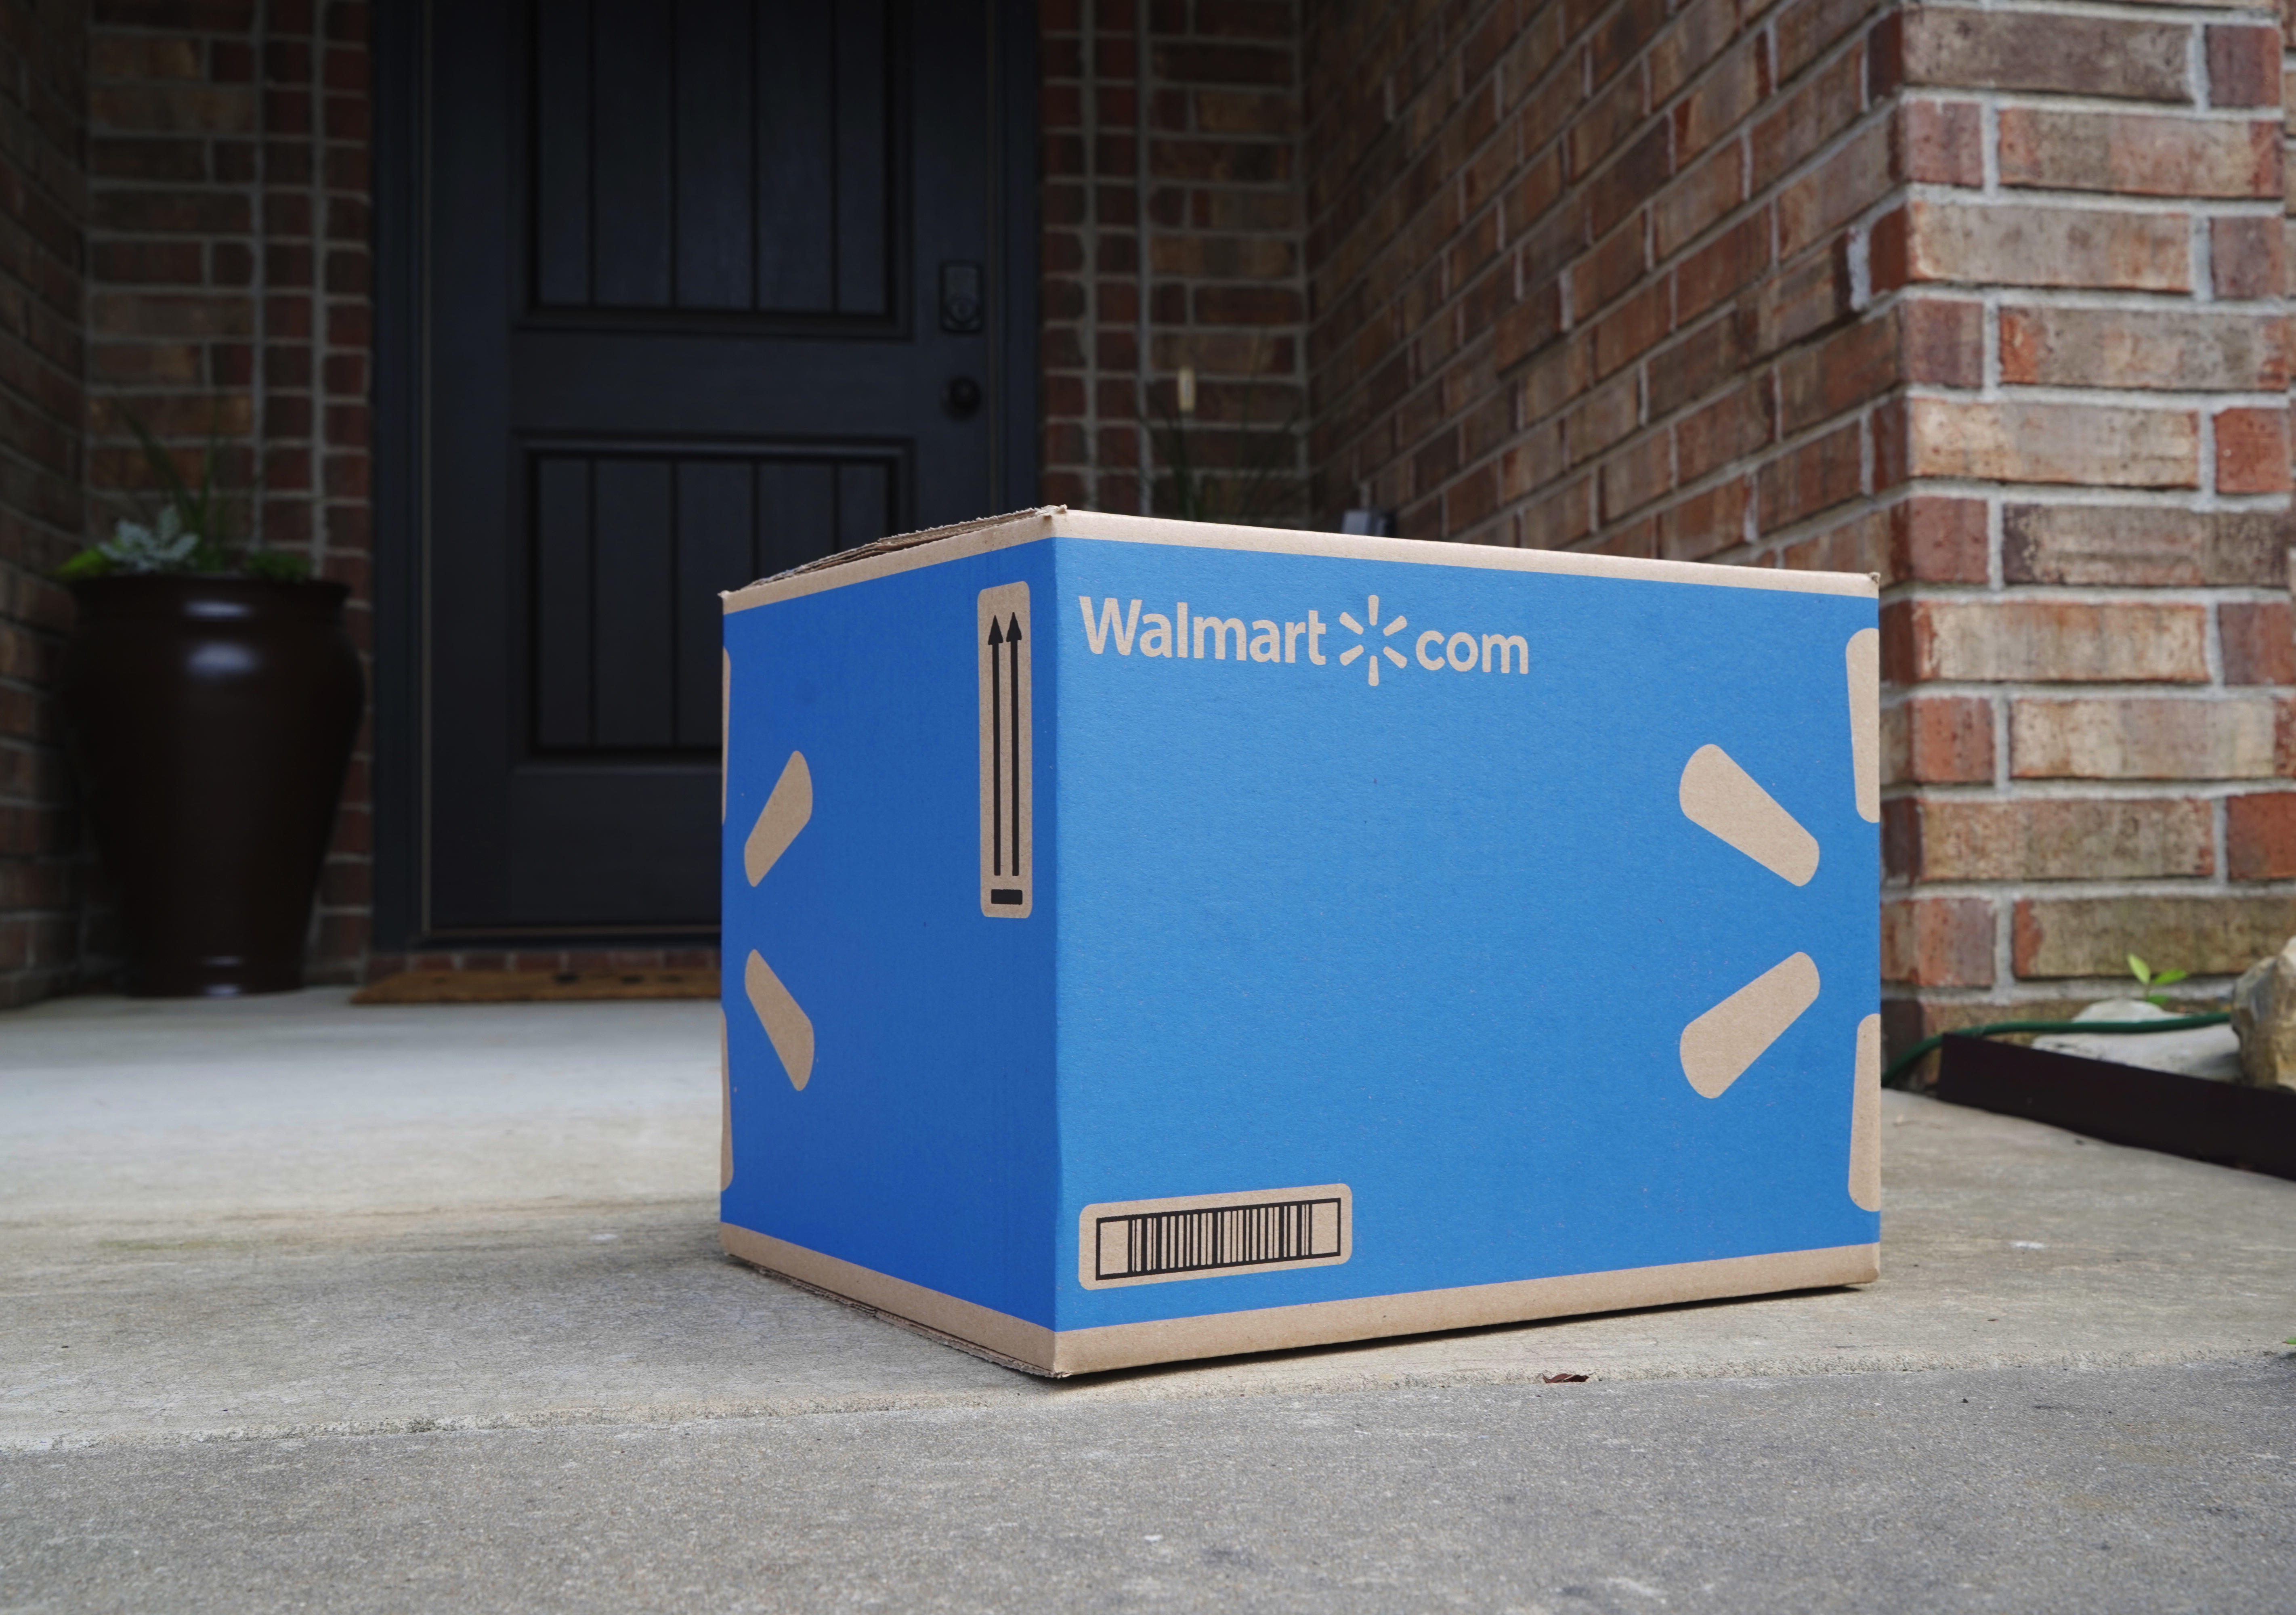 Walmart NextDay delivery box on a doorstep